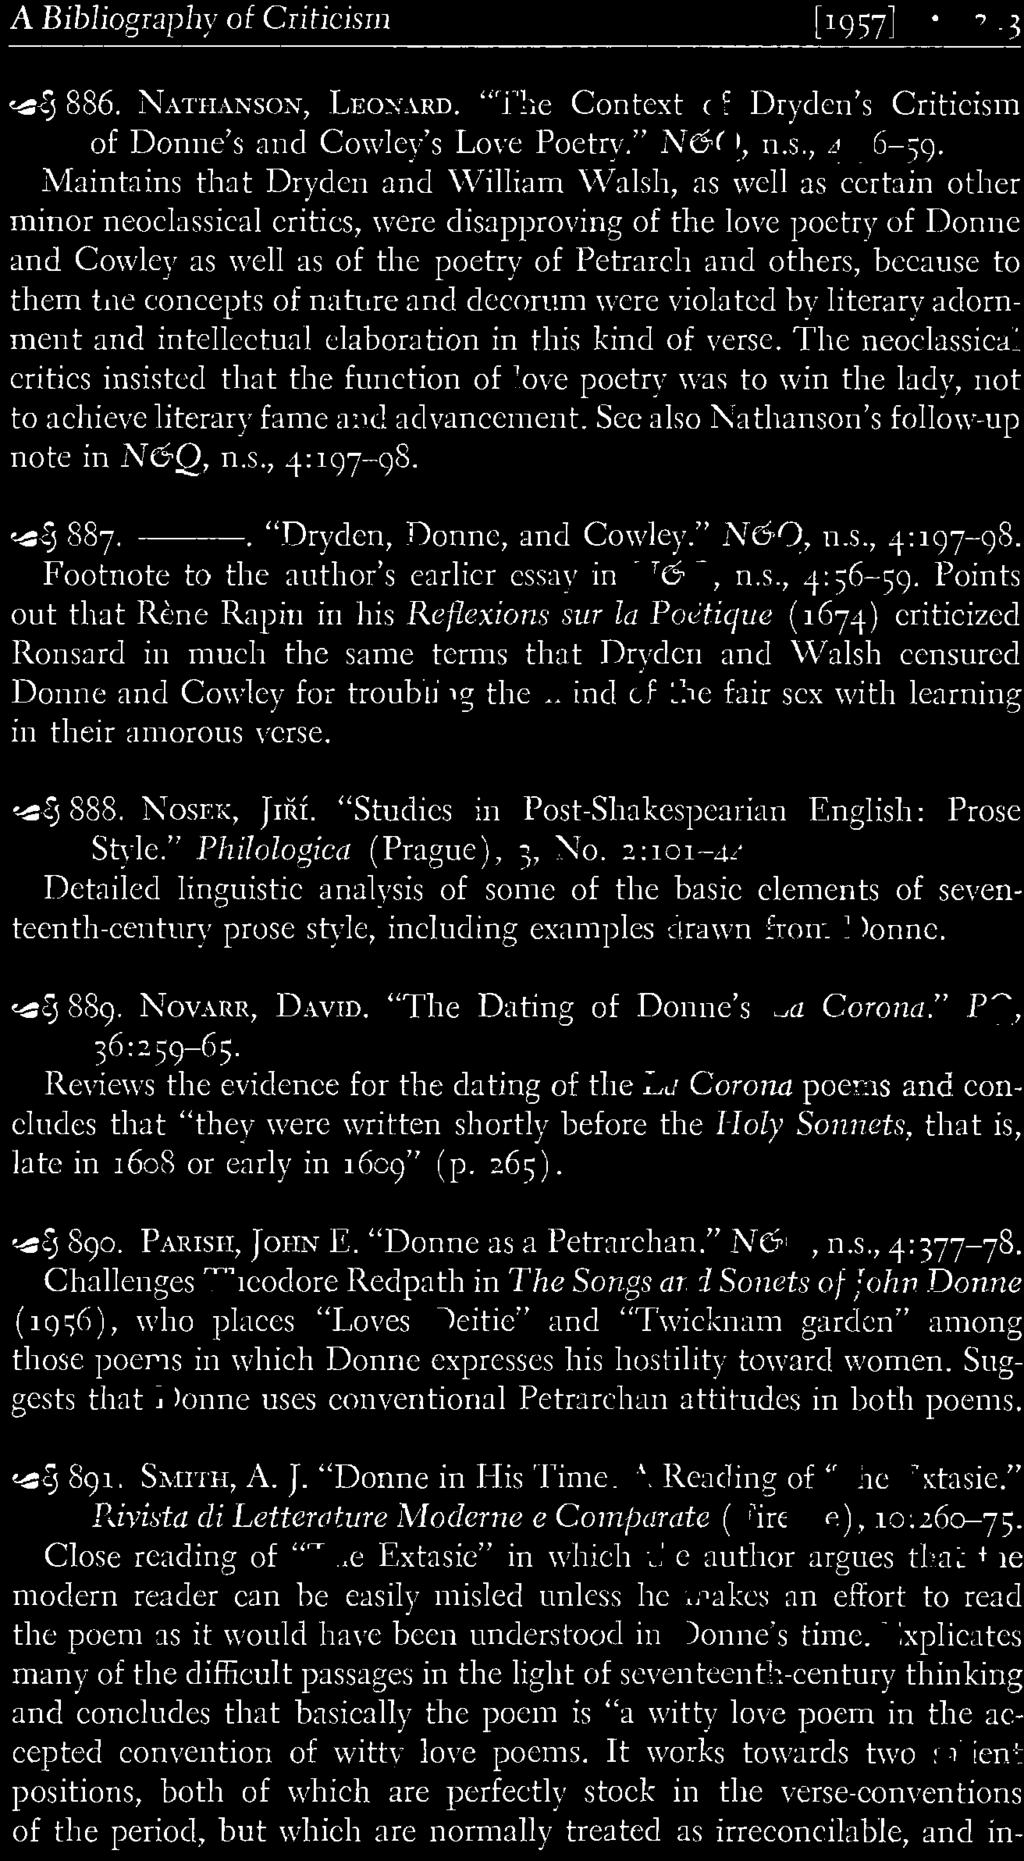 ". ""Dryden, Donne, and Cowley."" N6Q, n.s., 4:197-<)8. Footnote to the author's earlier essay in N6Q, n.s., 4: 56-59."